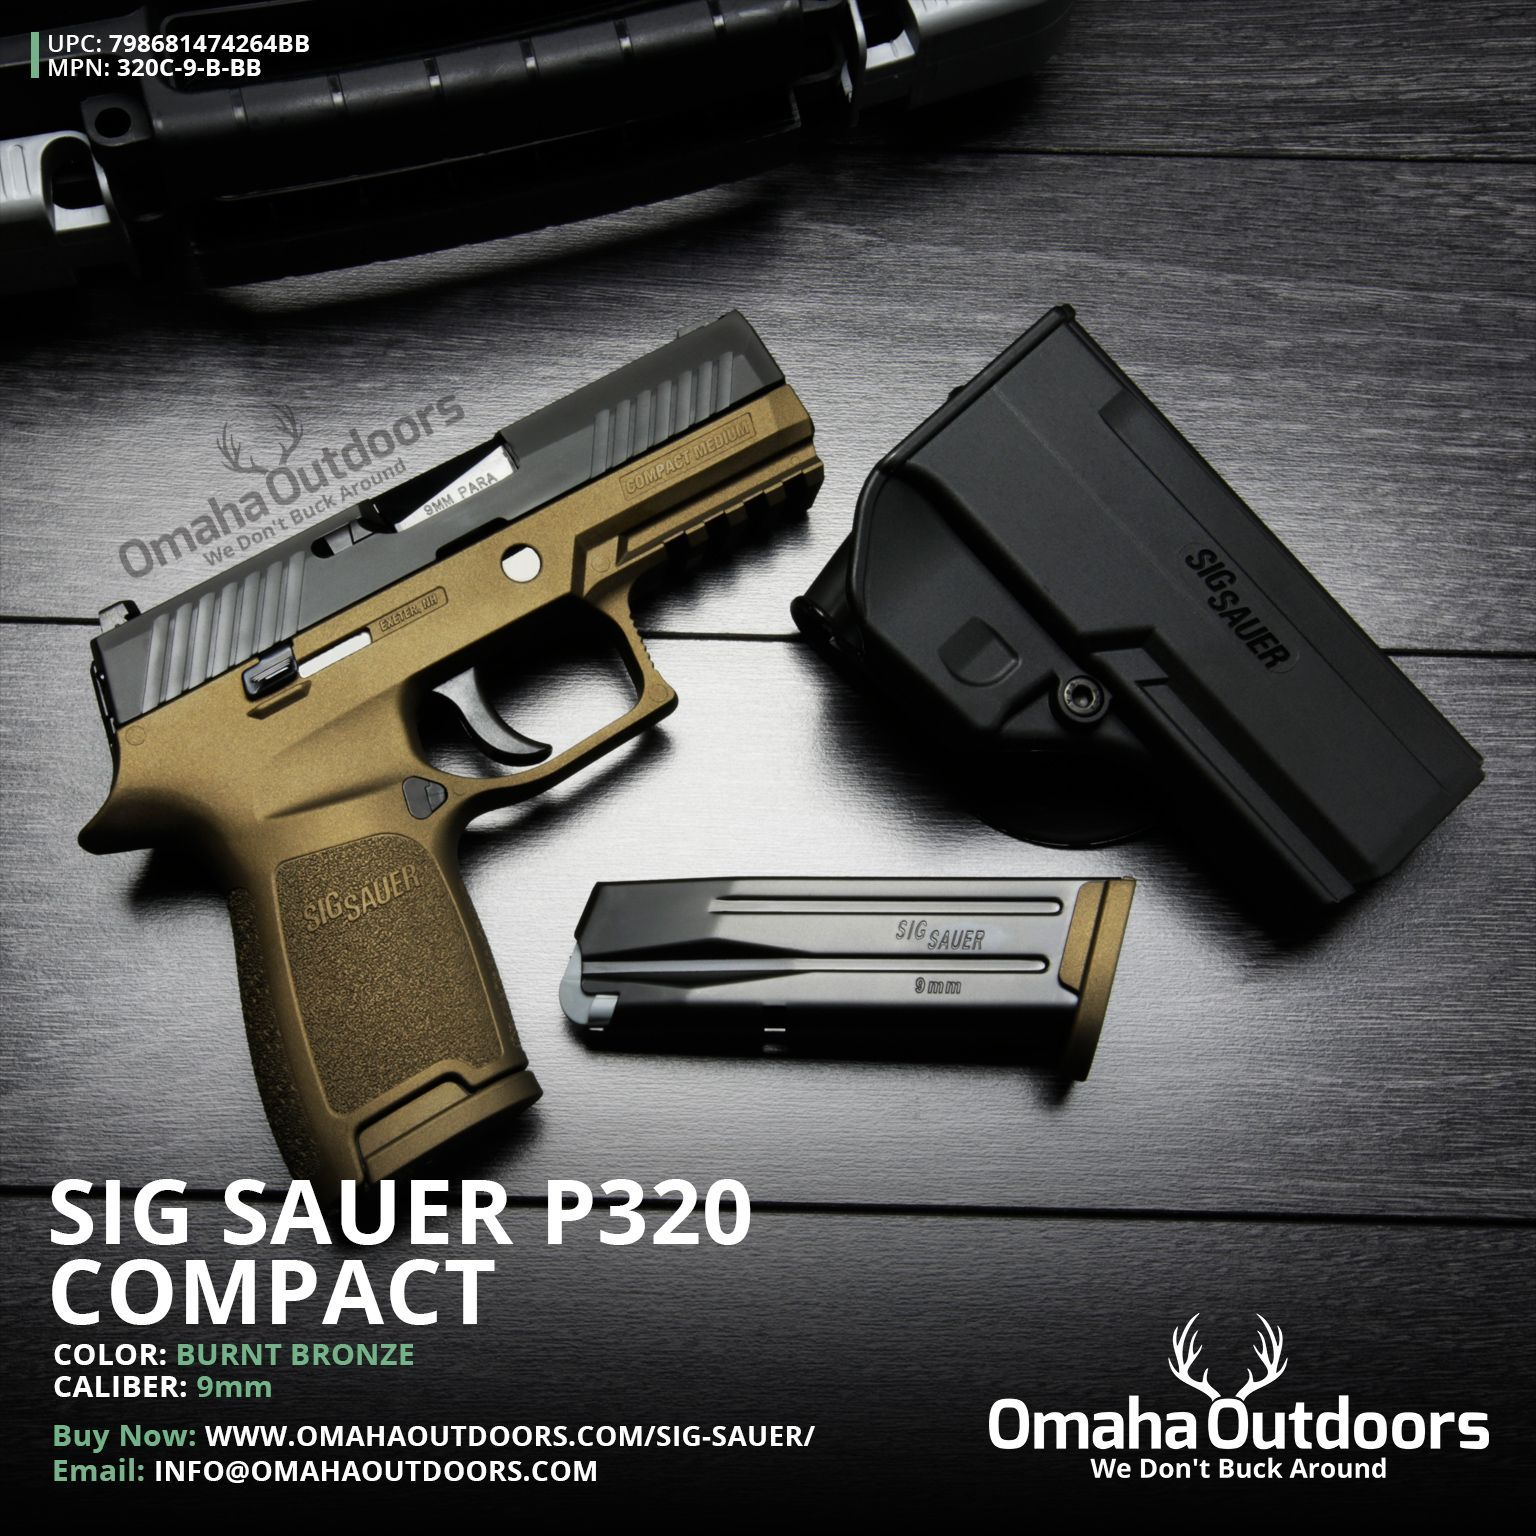 Pin by Dave Richardson on Sig Sauer P320 | Hand guns, Sig